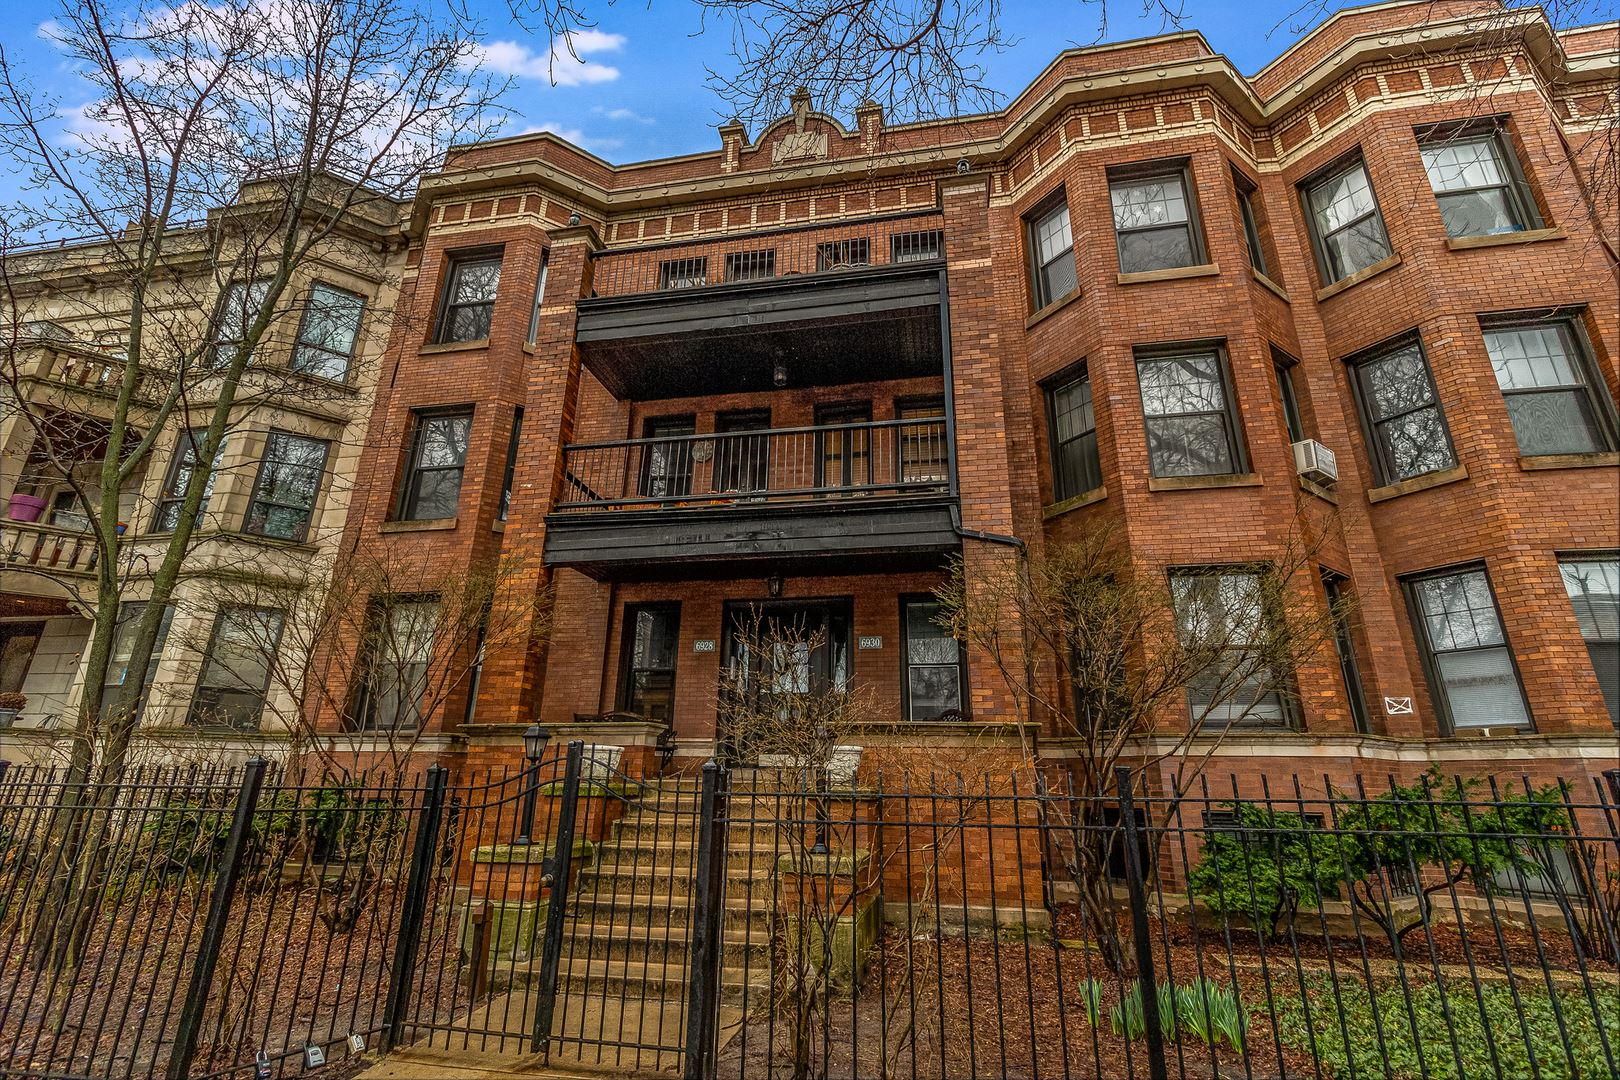 6930 N SHERIDAN Road #1, Chicago, IL 60626 - #: 10681549